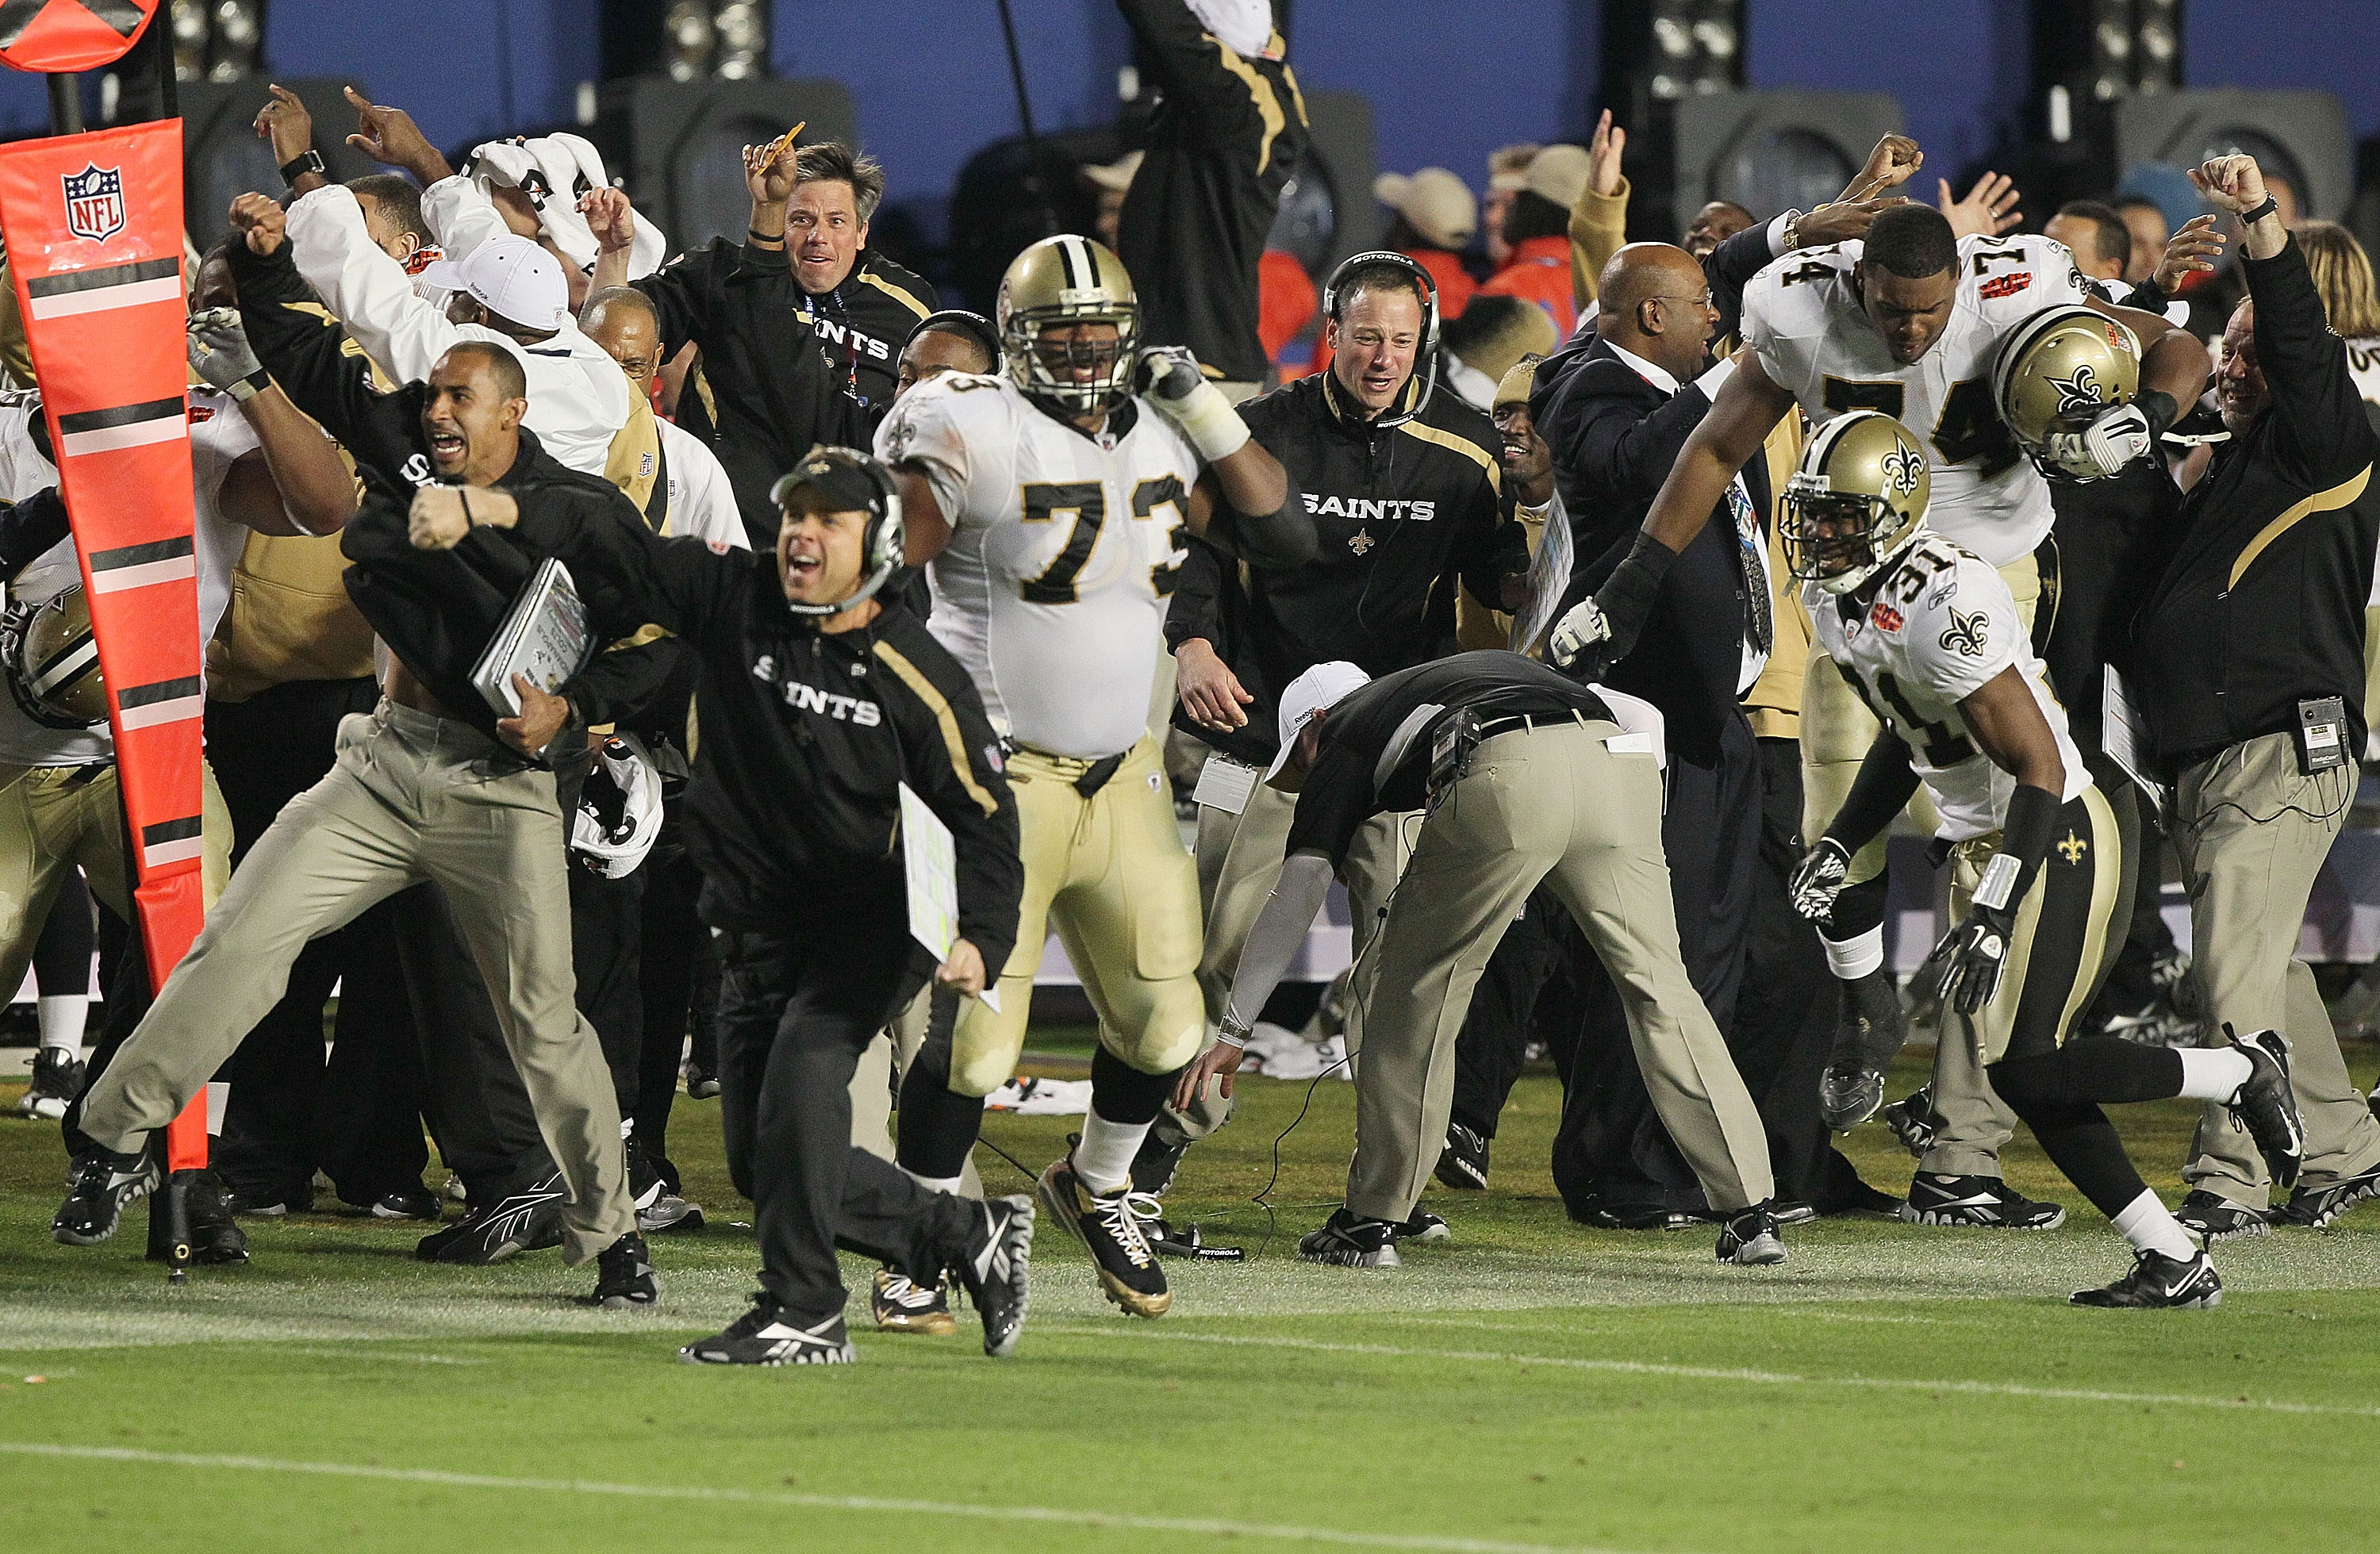 MIAMI GARDENS, FL - FEBRUARY 07: Head coach Sean Payton of the New Orleans Saints reacts to Tracy Porter's interception of Peyton Manning of the Indianapolis Colts for a touchdown in the fourth quarter during Super Bowl XLIV on February 7, 2010 at Sun Lif